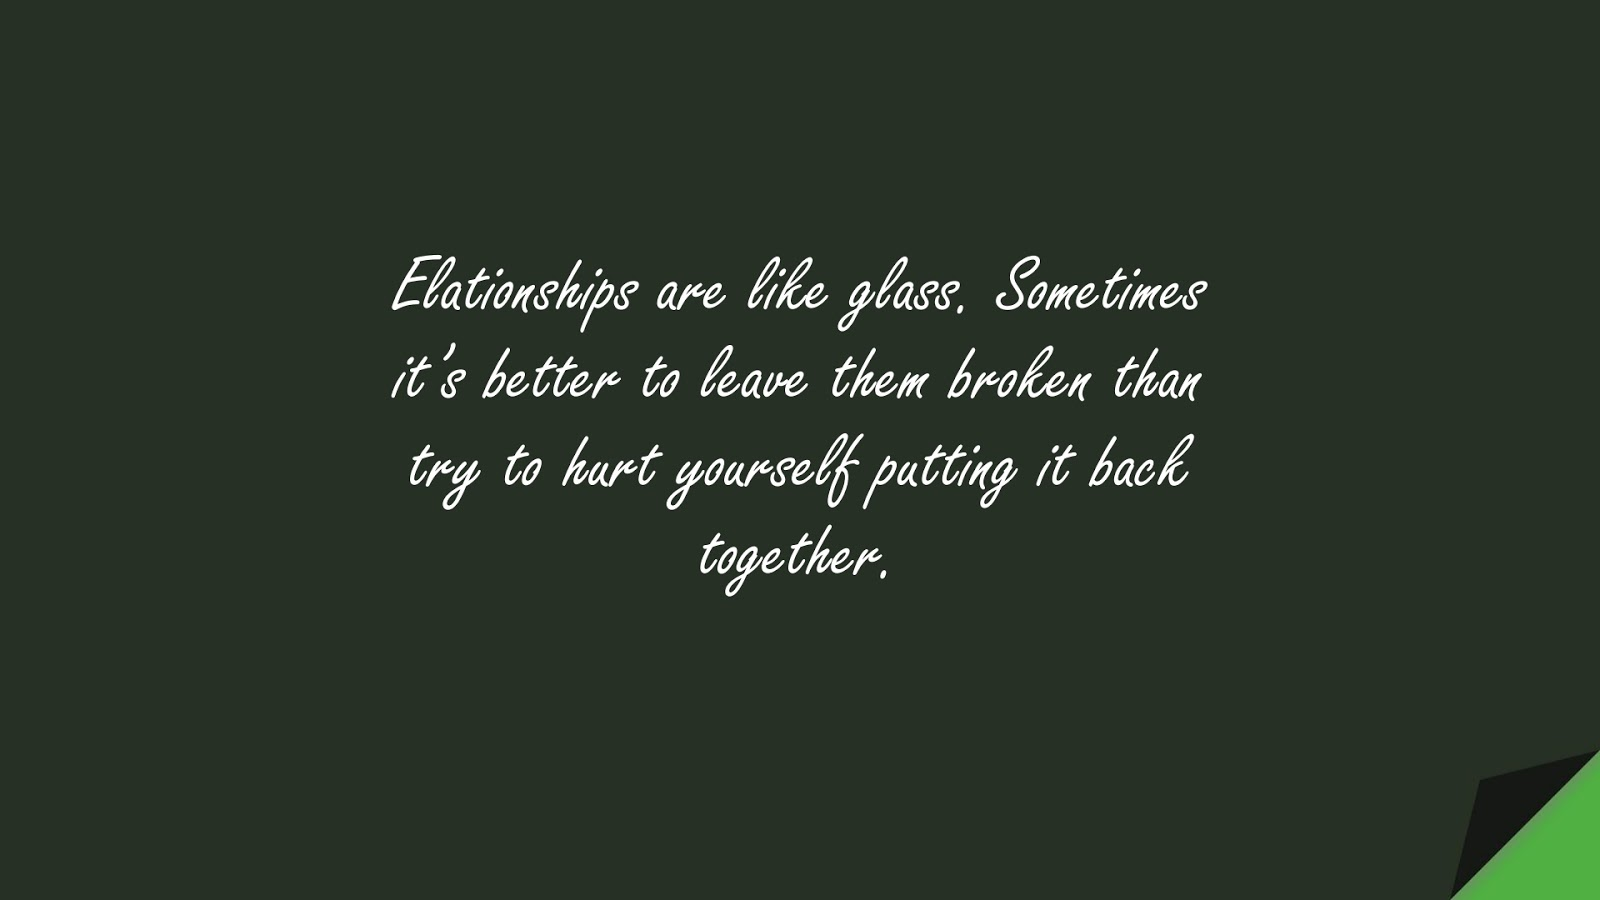 Elationships are like glass. Sometimes it's better to leave them broken than try to hurt yourself putting it back together.FALSE